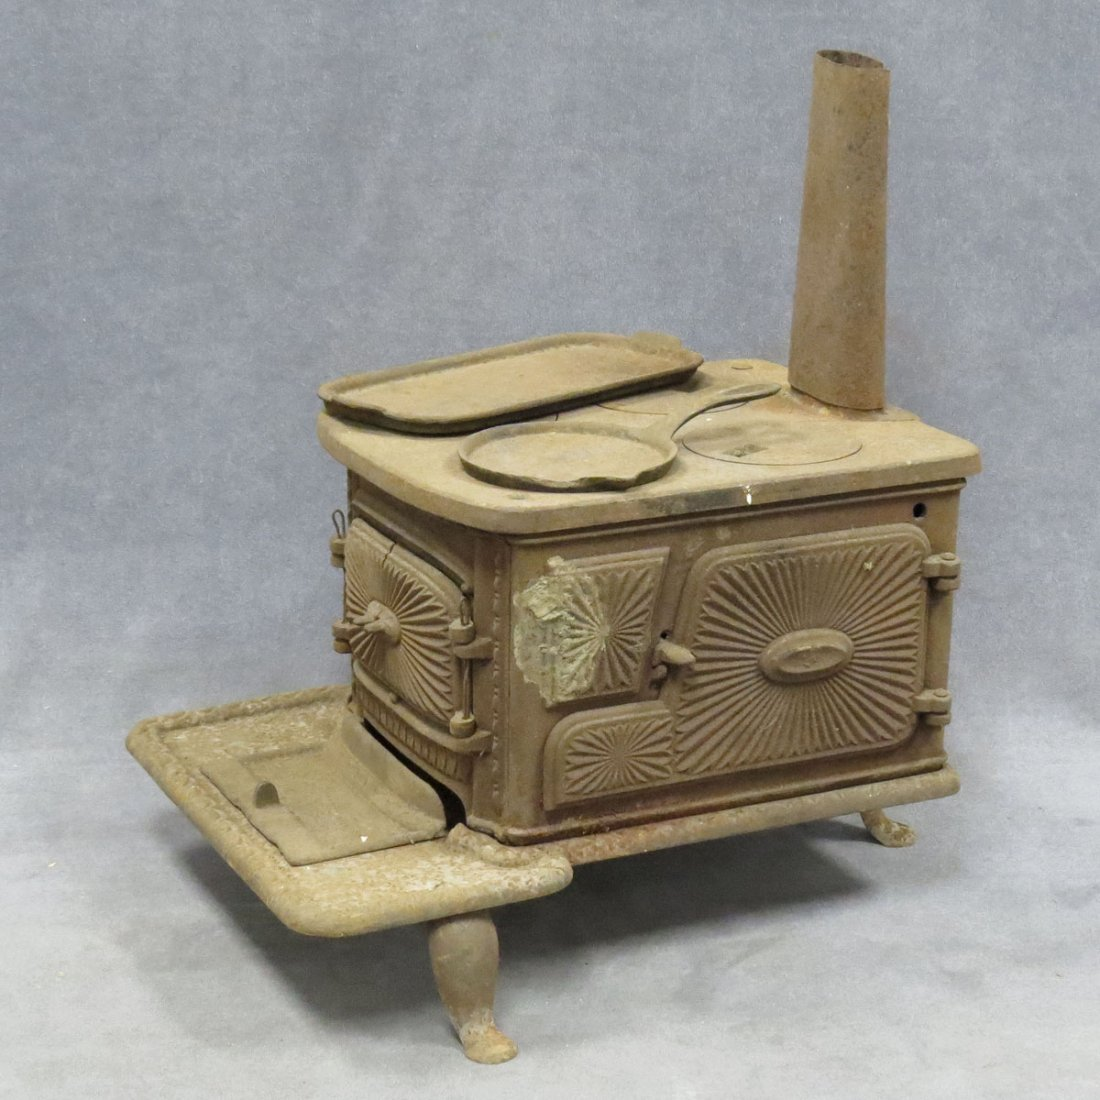 VINTAGE CAST IRON CHILD'S STOVE WITH ACCESSORIES